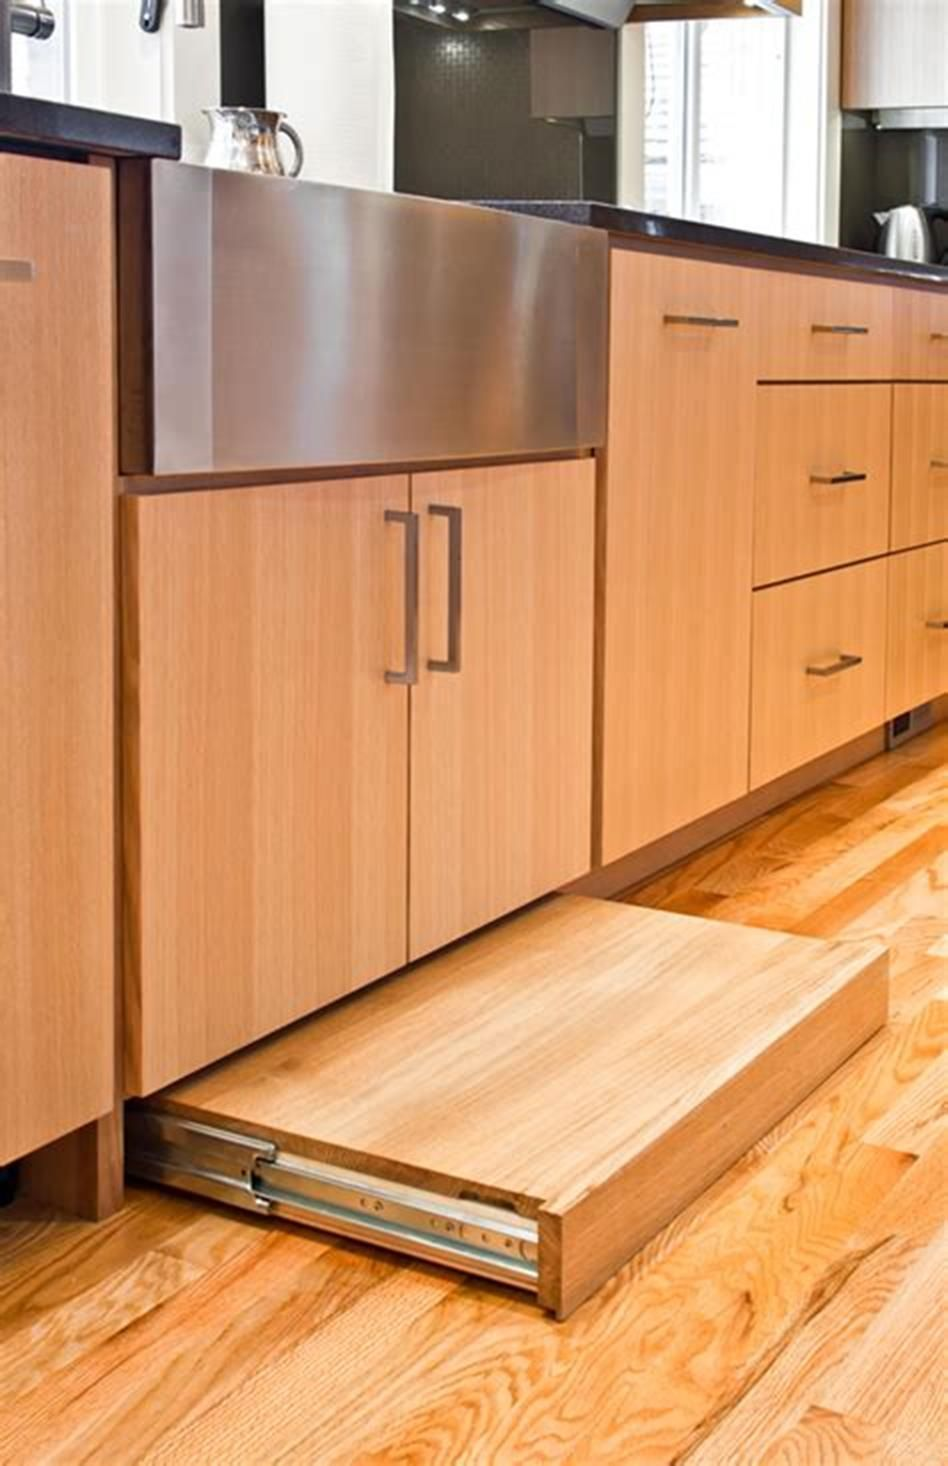 30 Affordable Kitchens With Oak Cabinets Ideas - ComeDecor ...